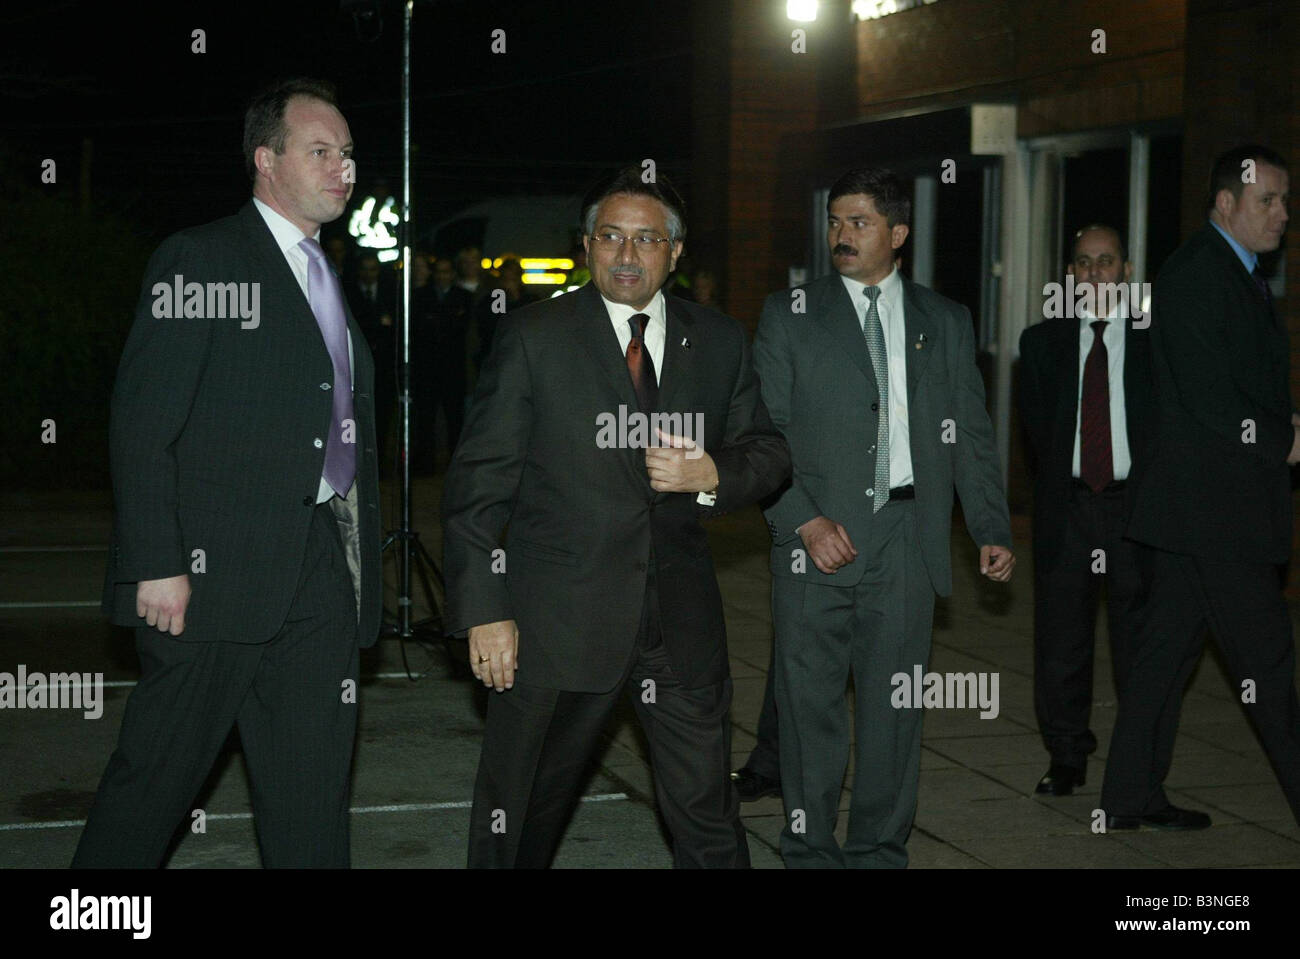 Pakistan President Musharraf arrives in Manchester with thight security December 2004 - Stock Image